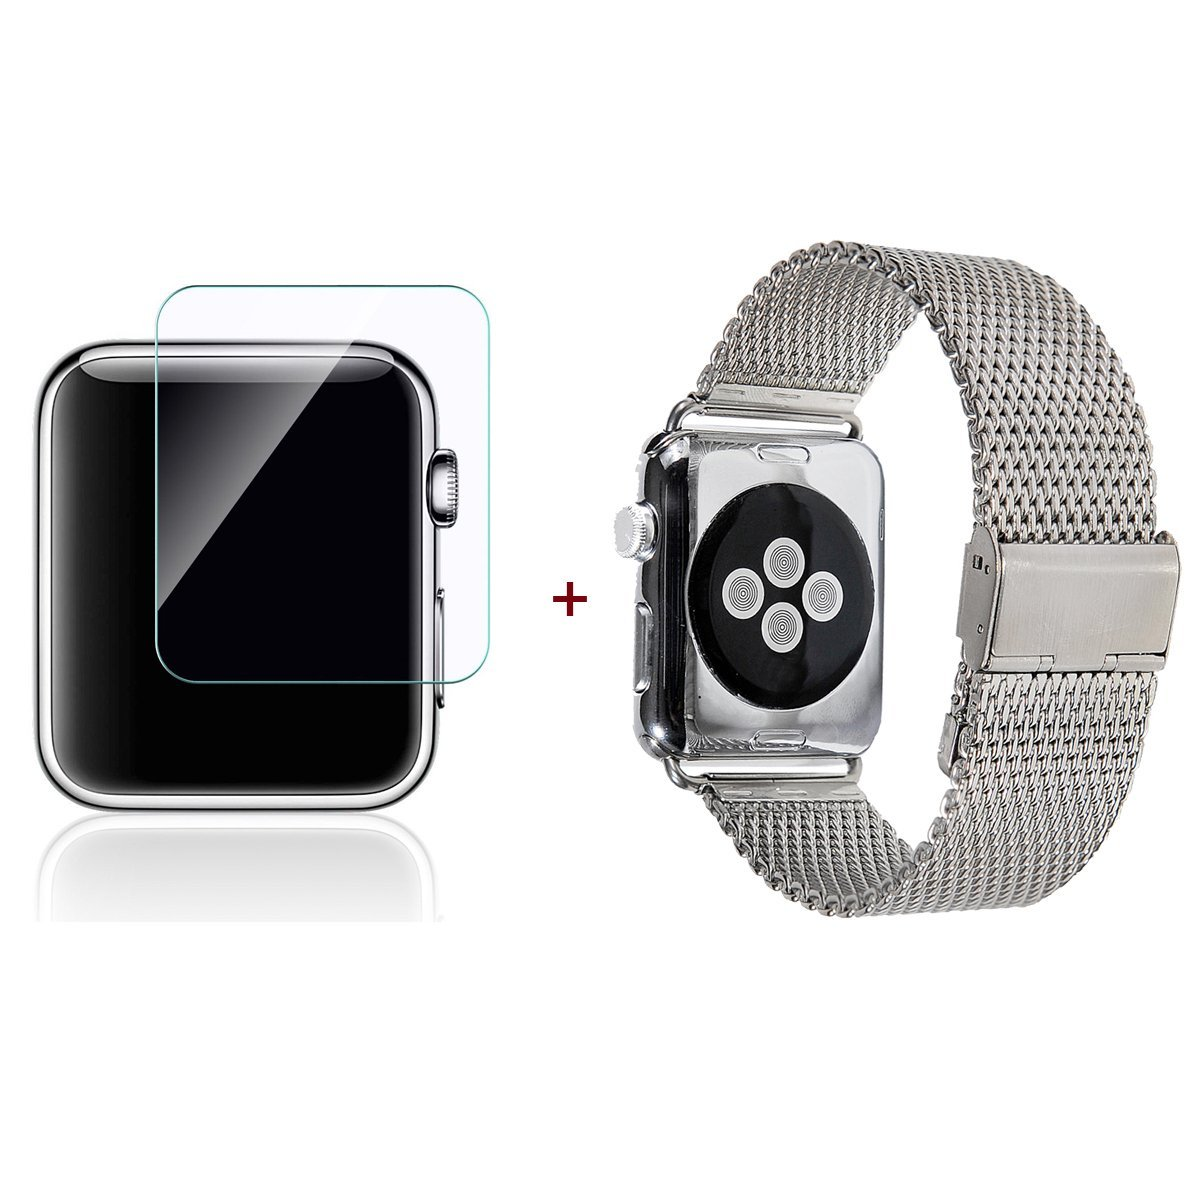 Apple Watch Band, GigaMax(TM) Milanese Loop Mesh Stainless Steel Strap Wrist Band Replacment With Metal Clasp Adapter for Apple Watch 42MM, Silver